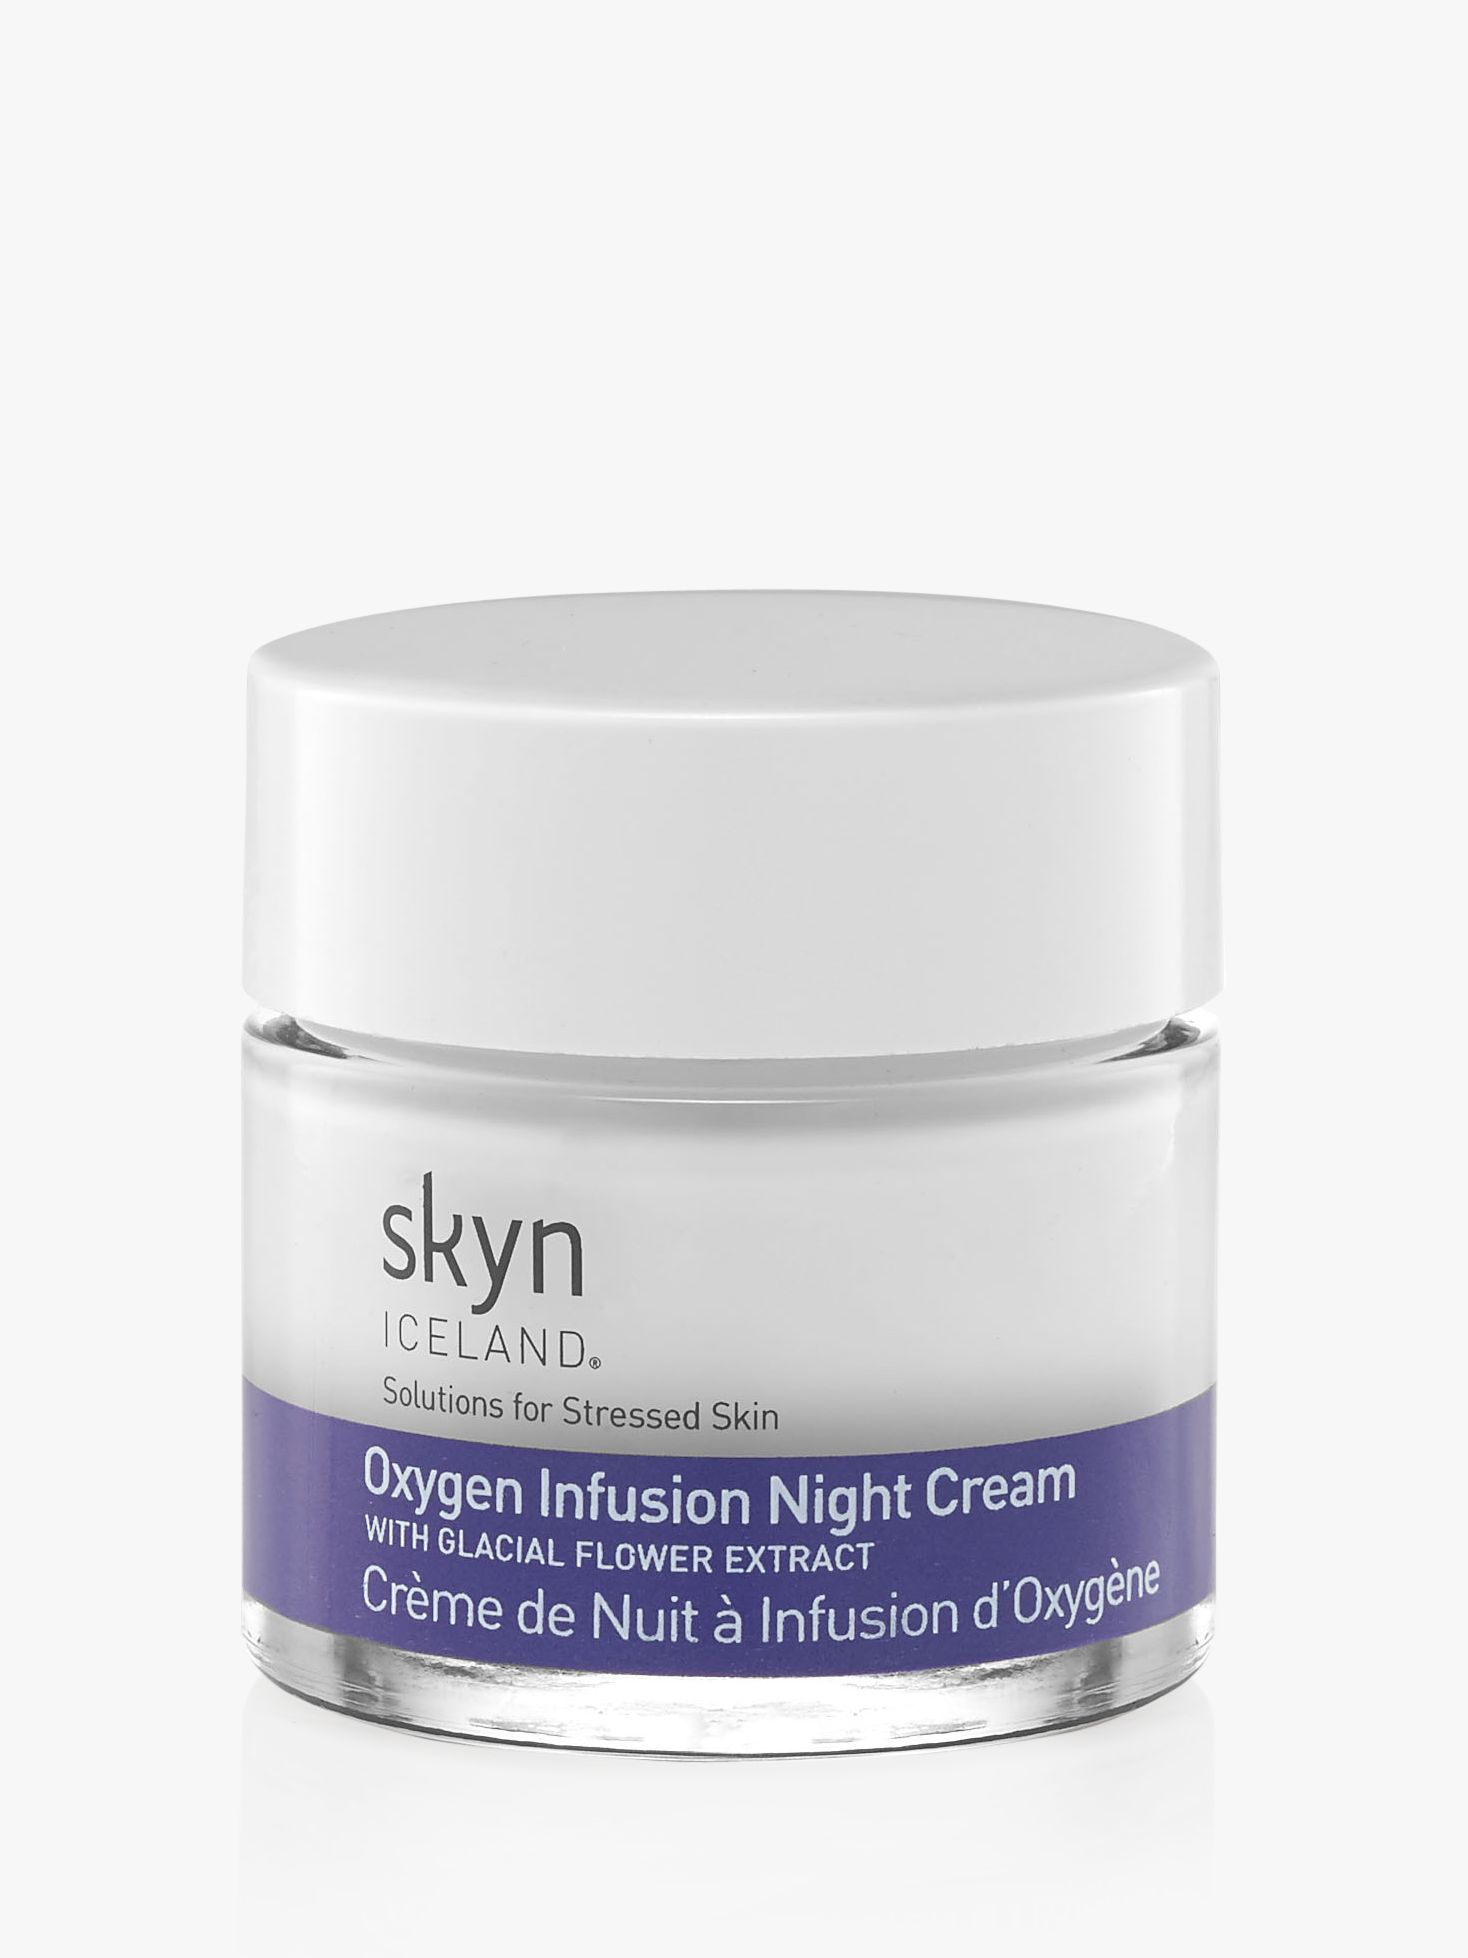 Skyn Iceland Oxygen Infusion Night Cream 56g In 2020 Anti Aging